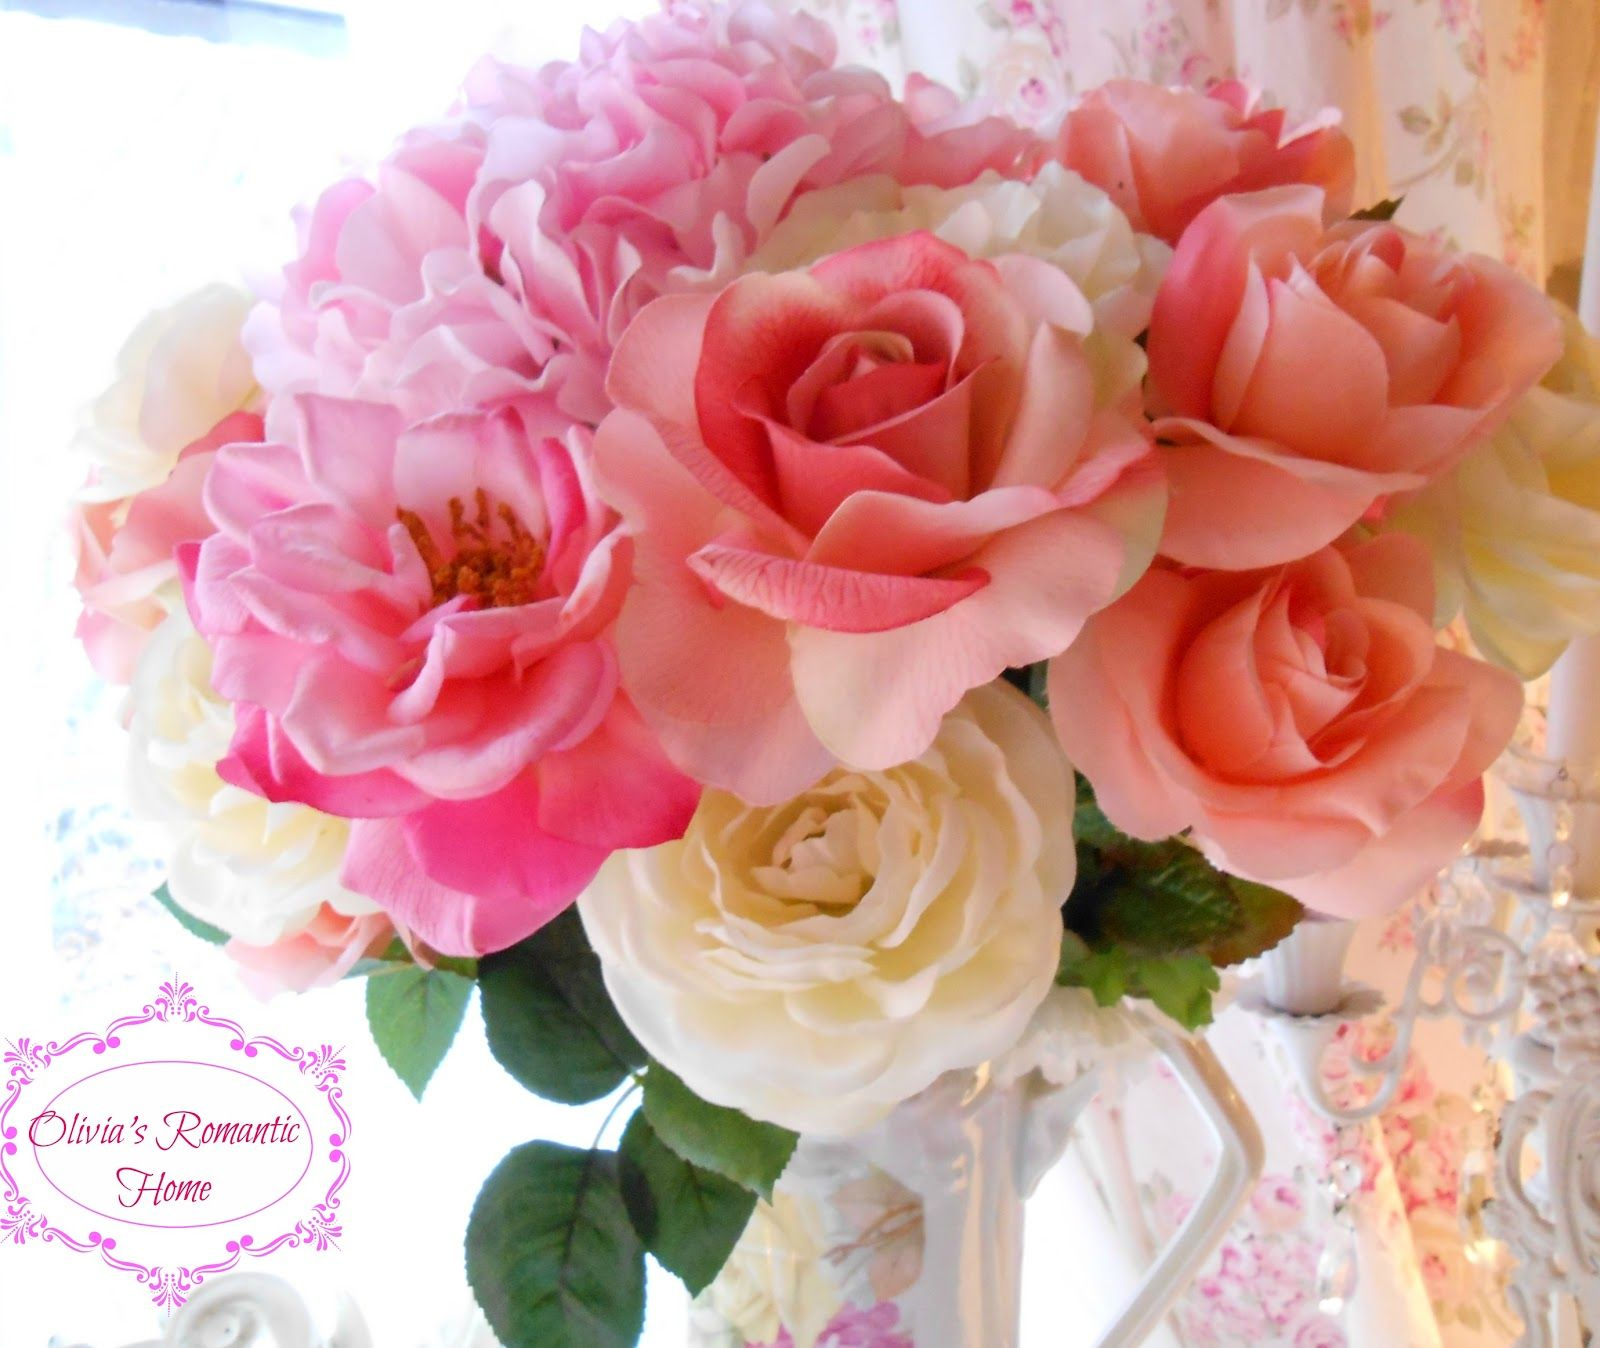 Olivias Romantic Home Flowers And Other Pretty Things